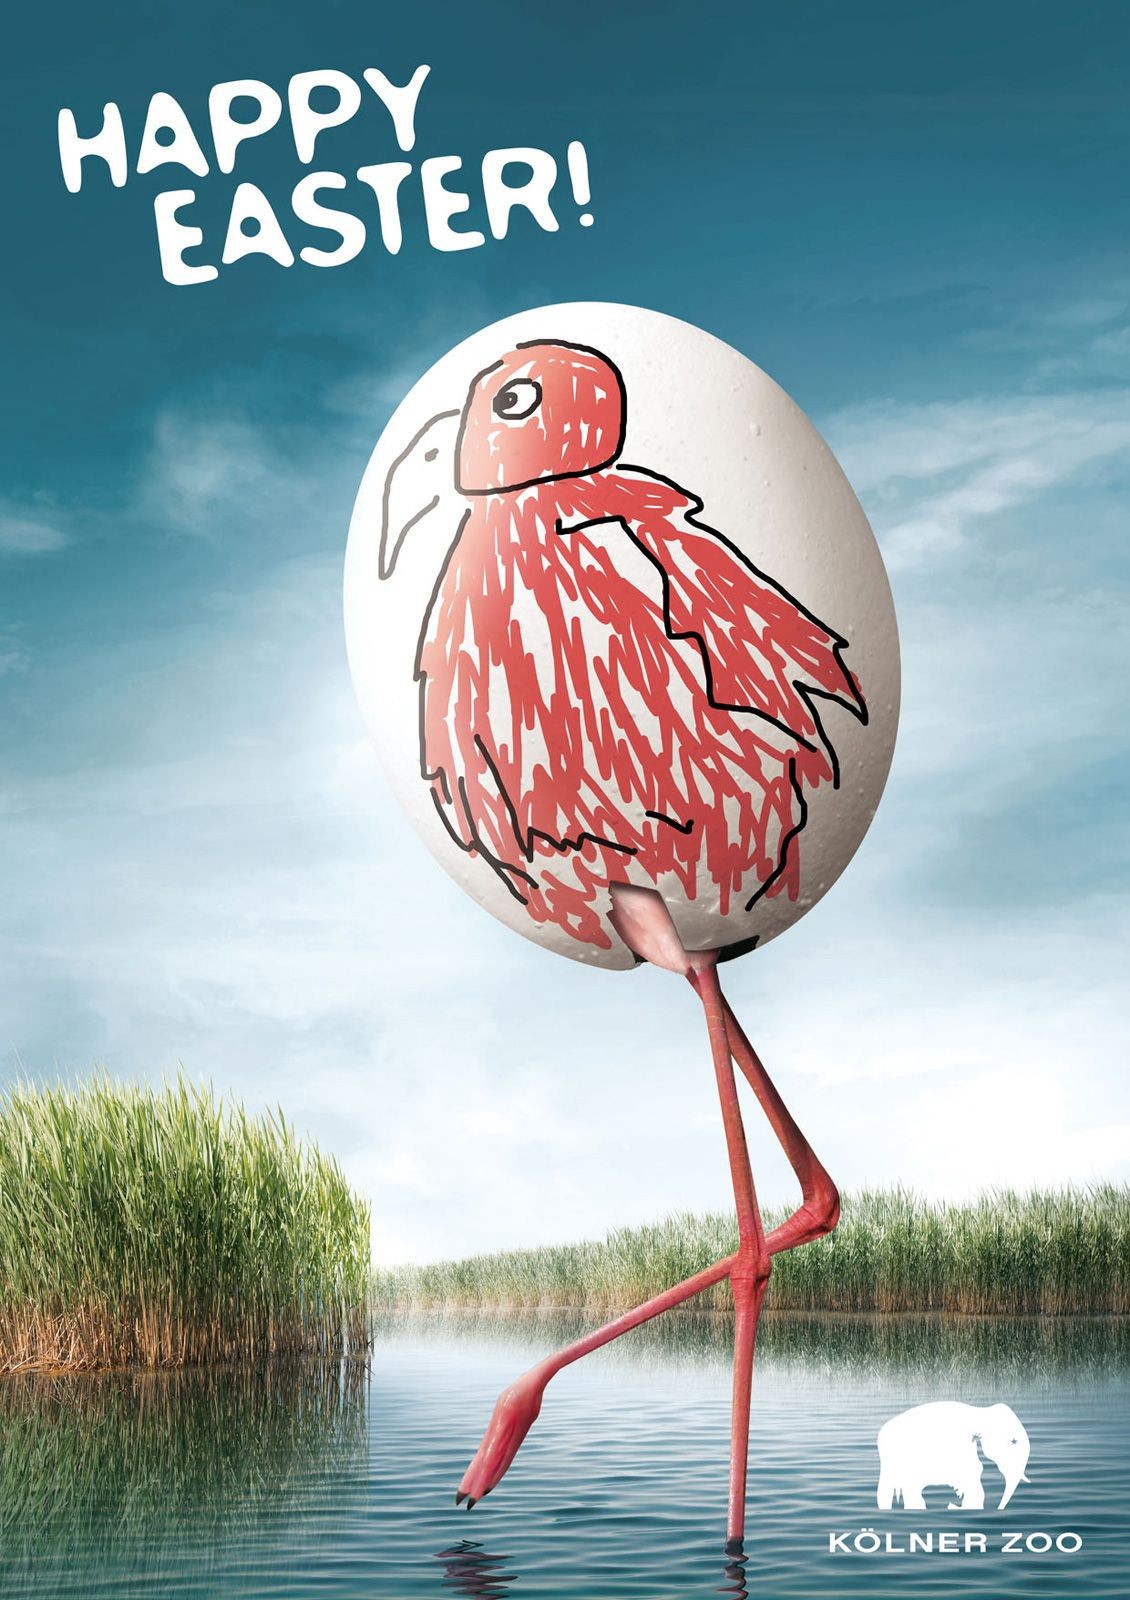 Happy Easter From Cologne Zoo Cologne Zoo Is Running A Print Advertising Campaign Wishing Visitors A Happy Easter The Three Print Ads Show Plain White